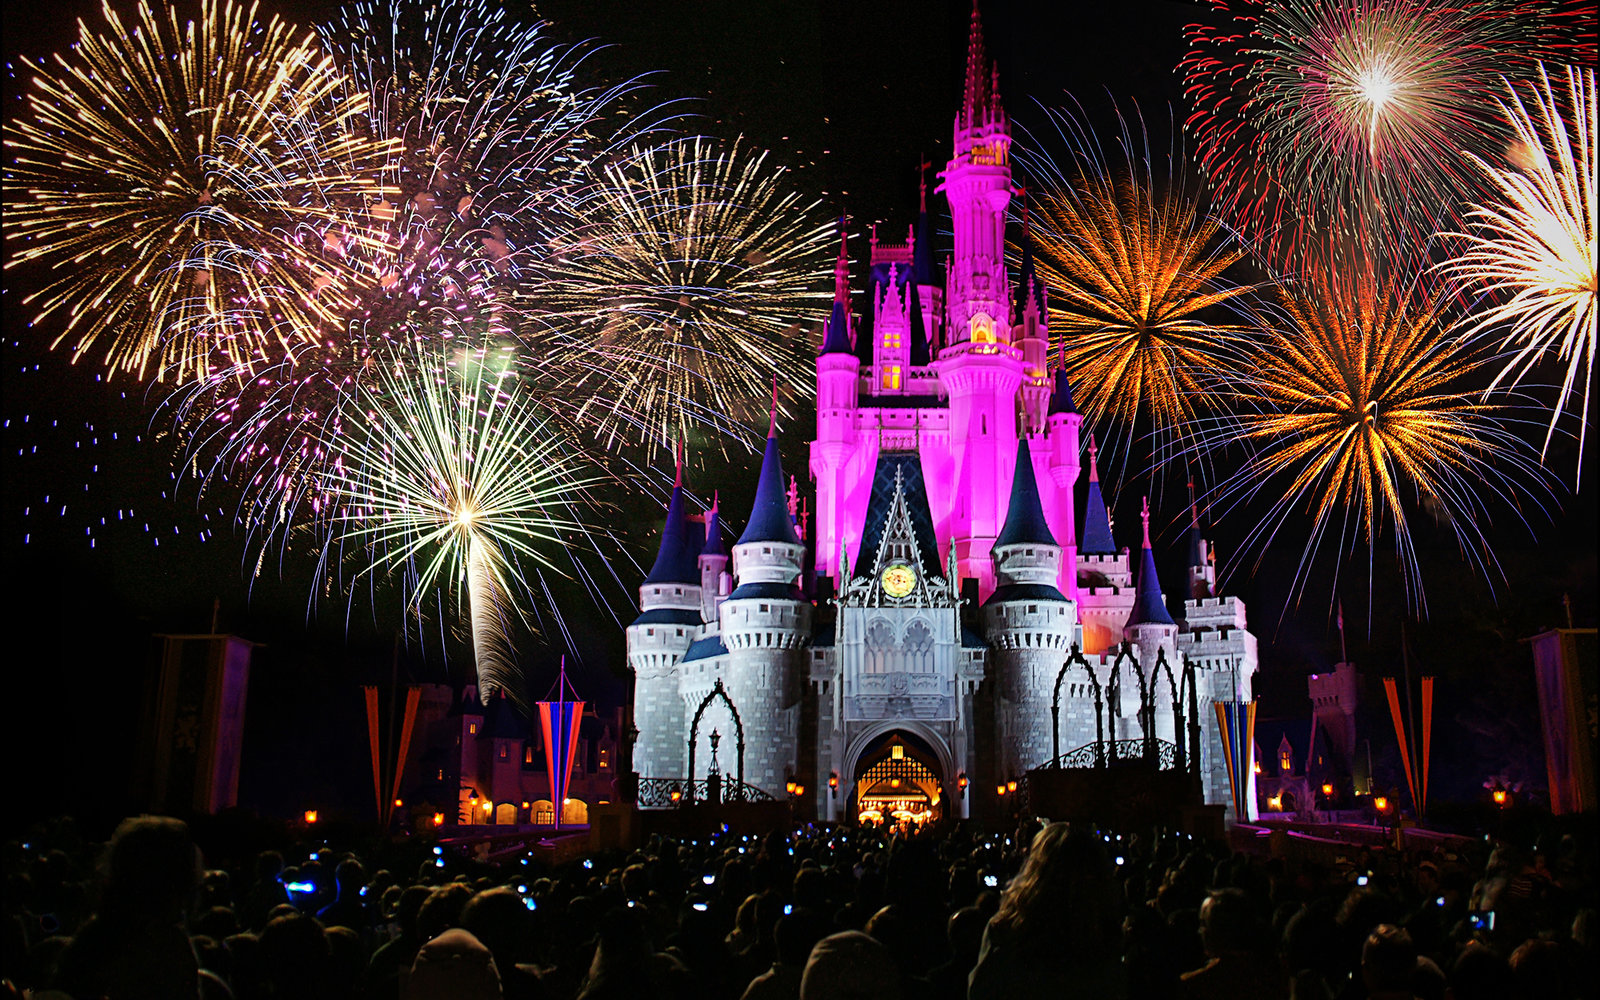 You can now get married at Magic Kingdom at night